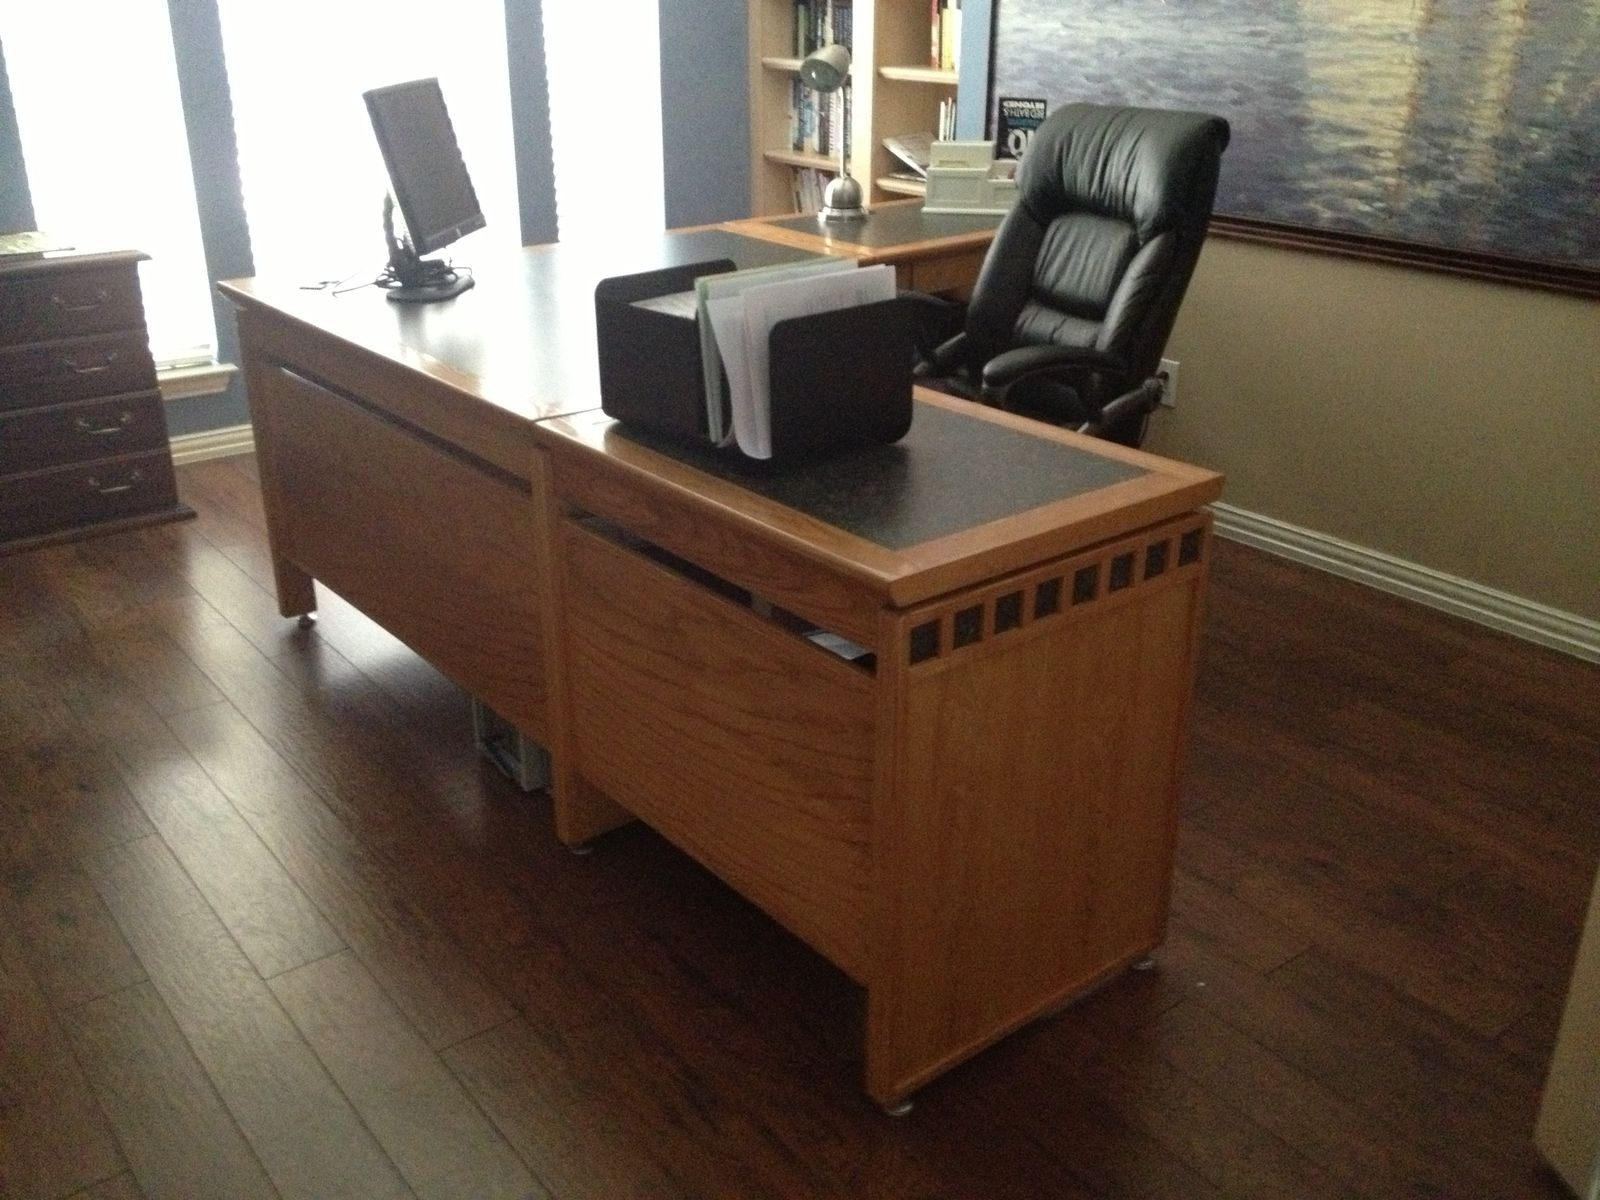 - Handmade Large Computer Desk By Tom's Handcrafted Furniture